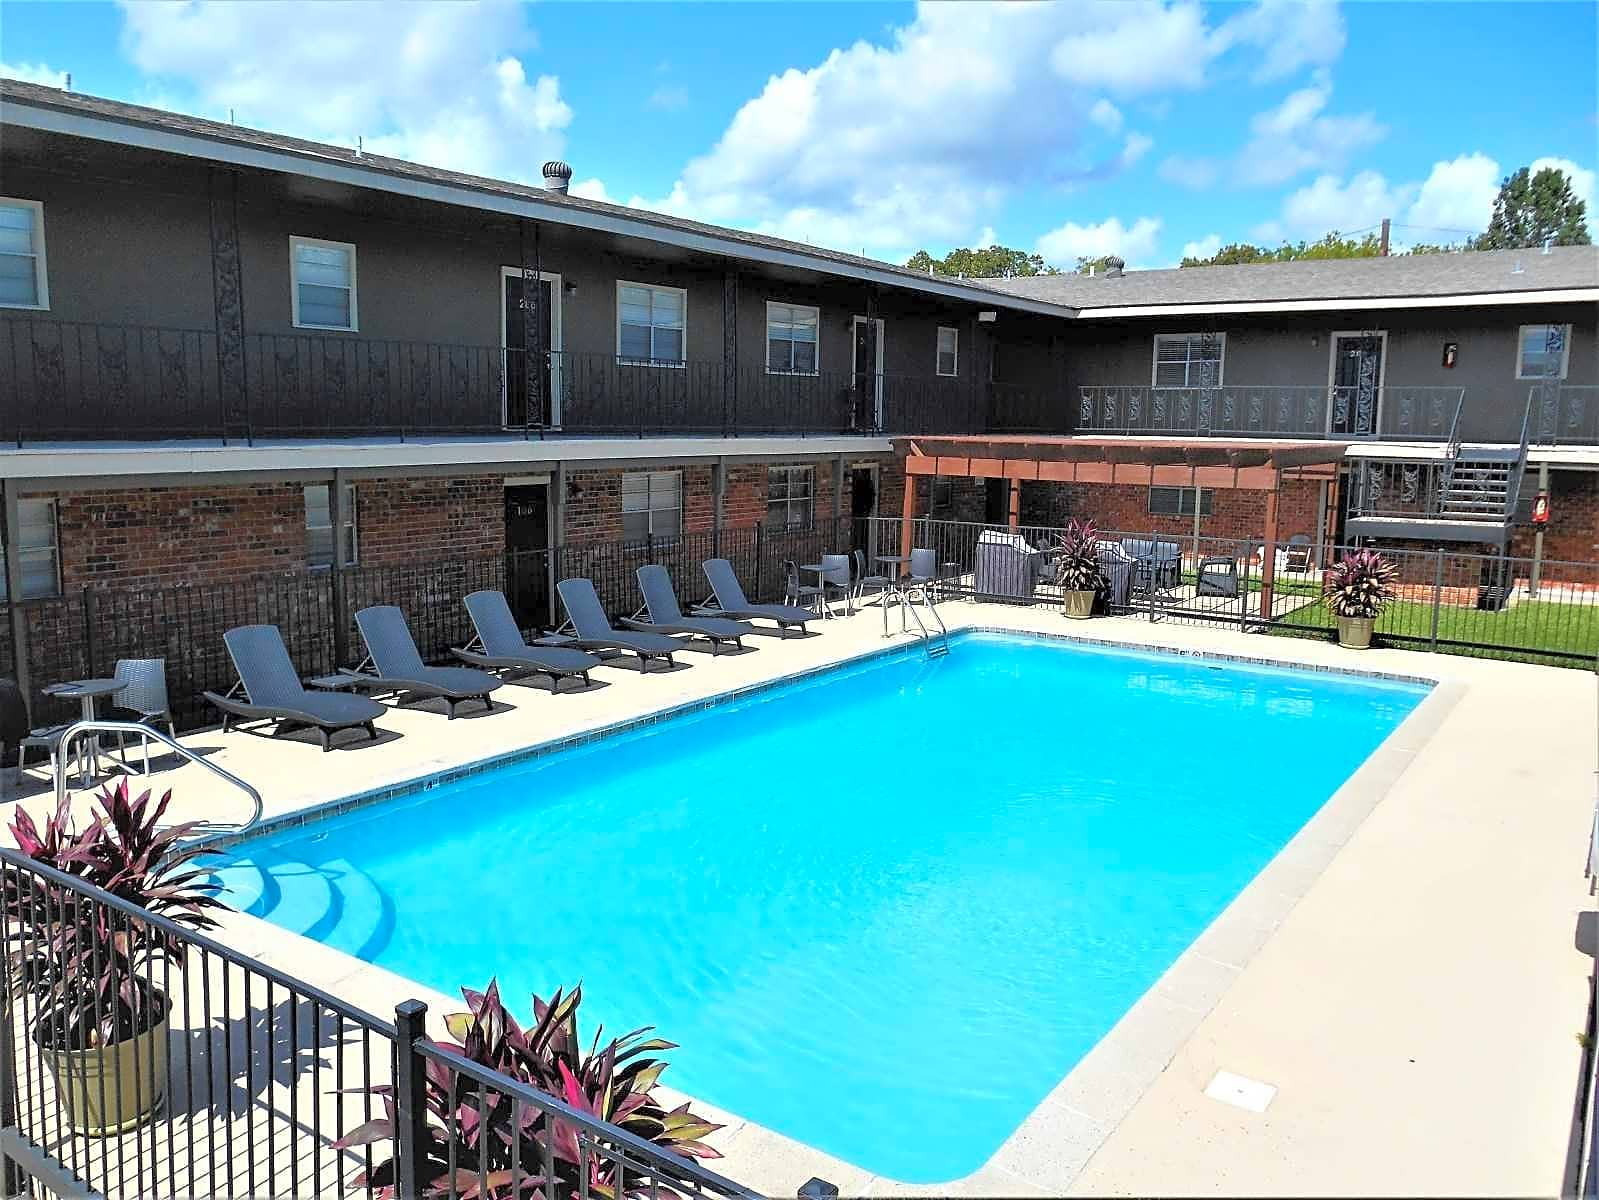 Apartments Near Nicholls Quail Court Apartments for Nicholls State University Students in Thibodaux, LA